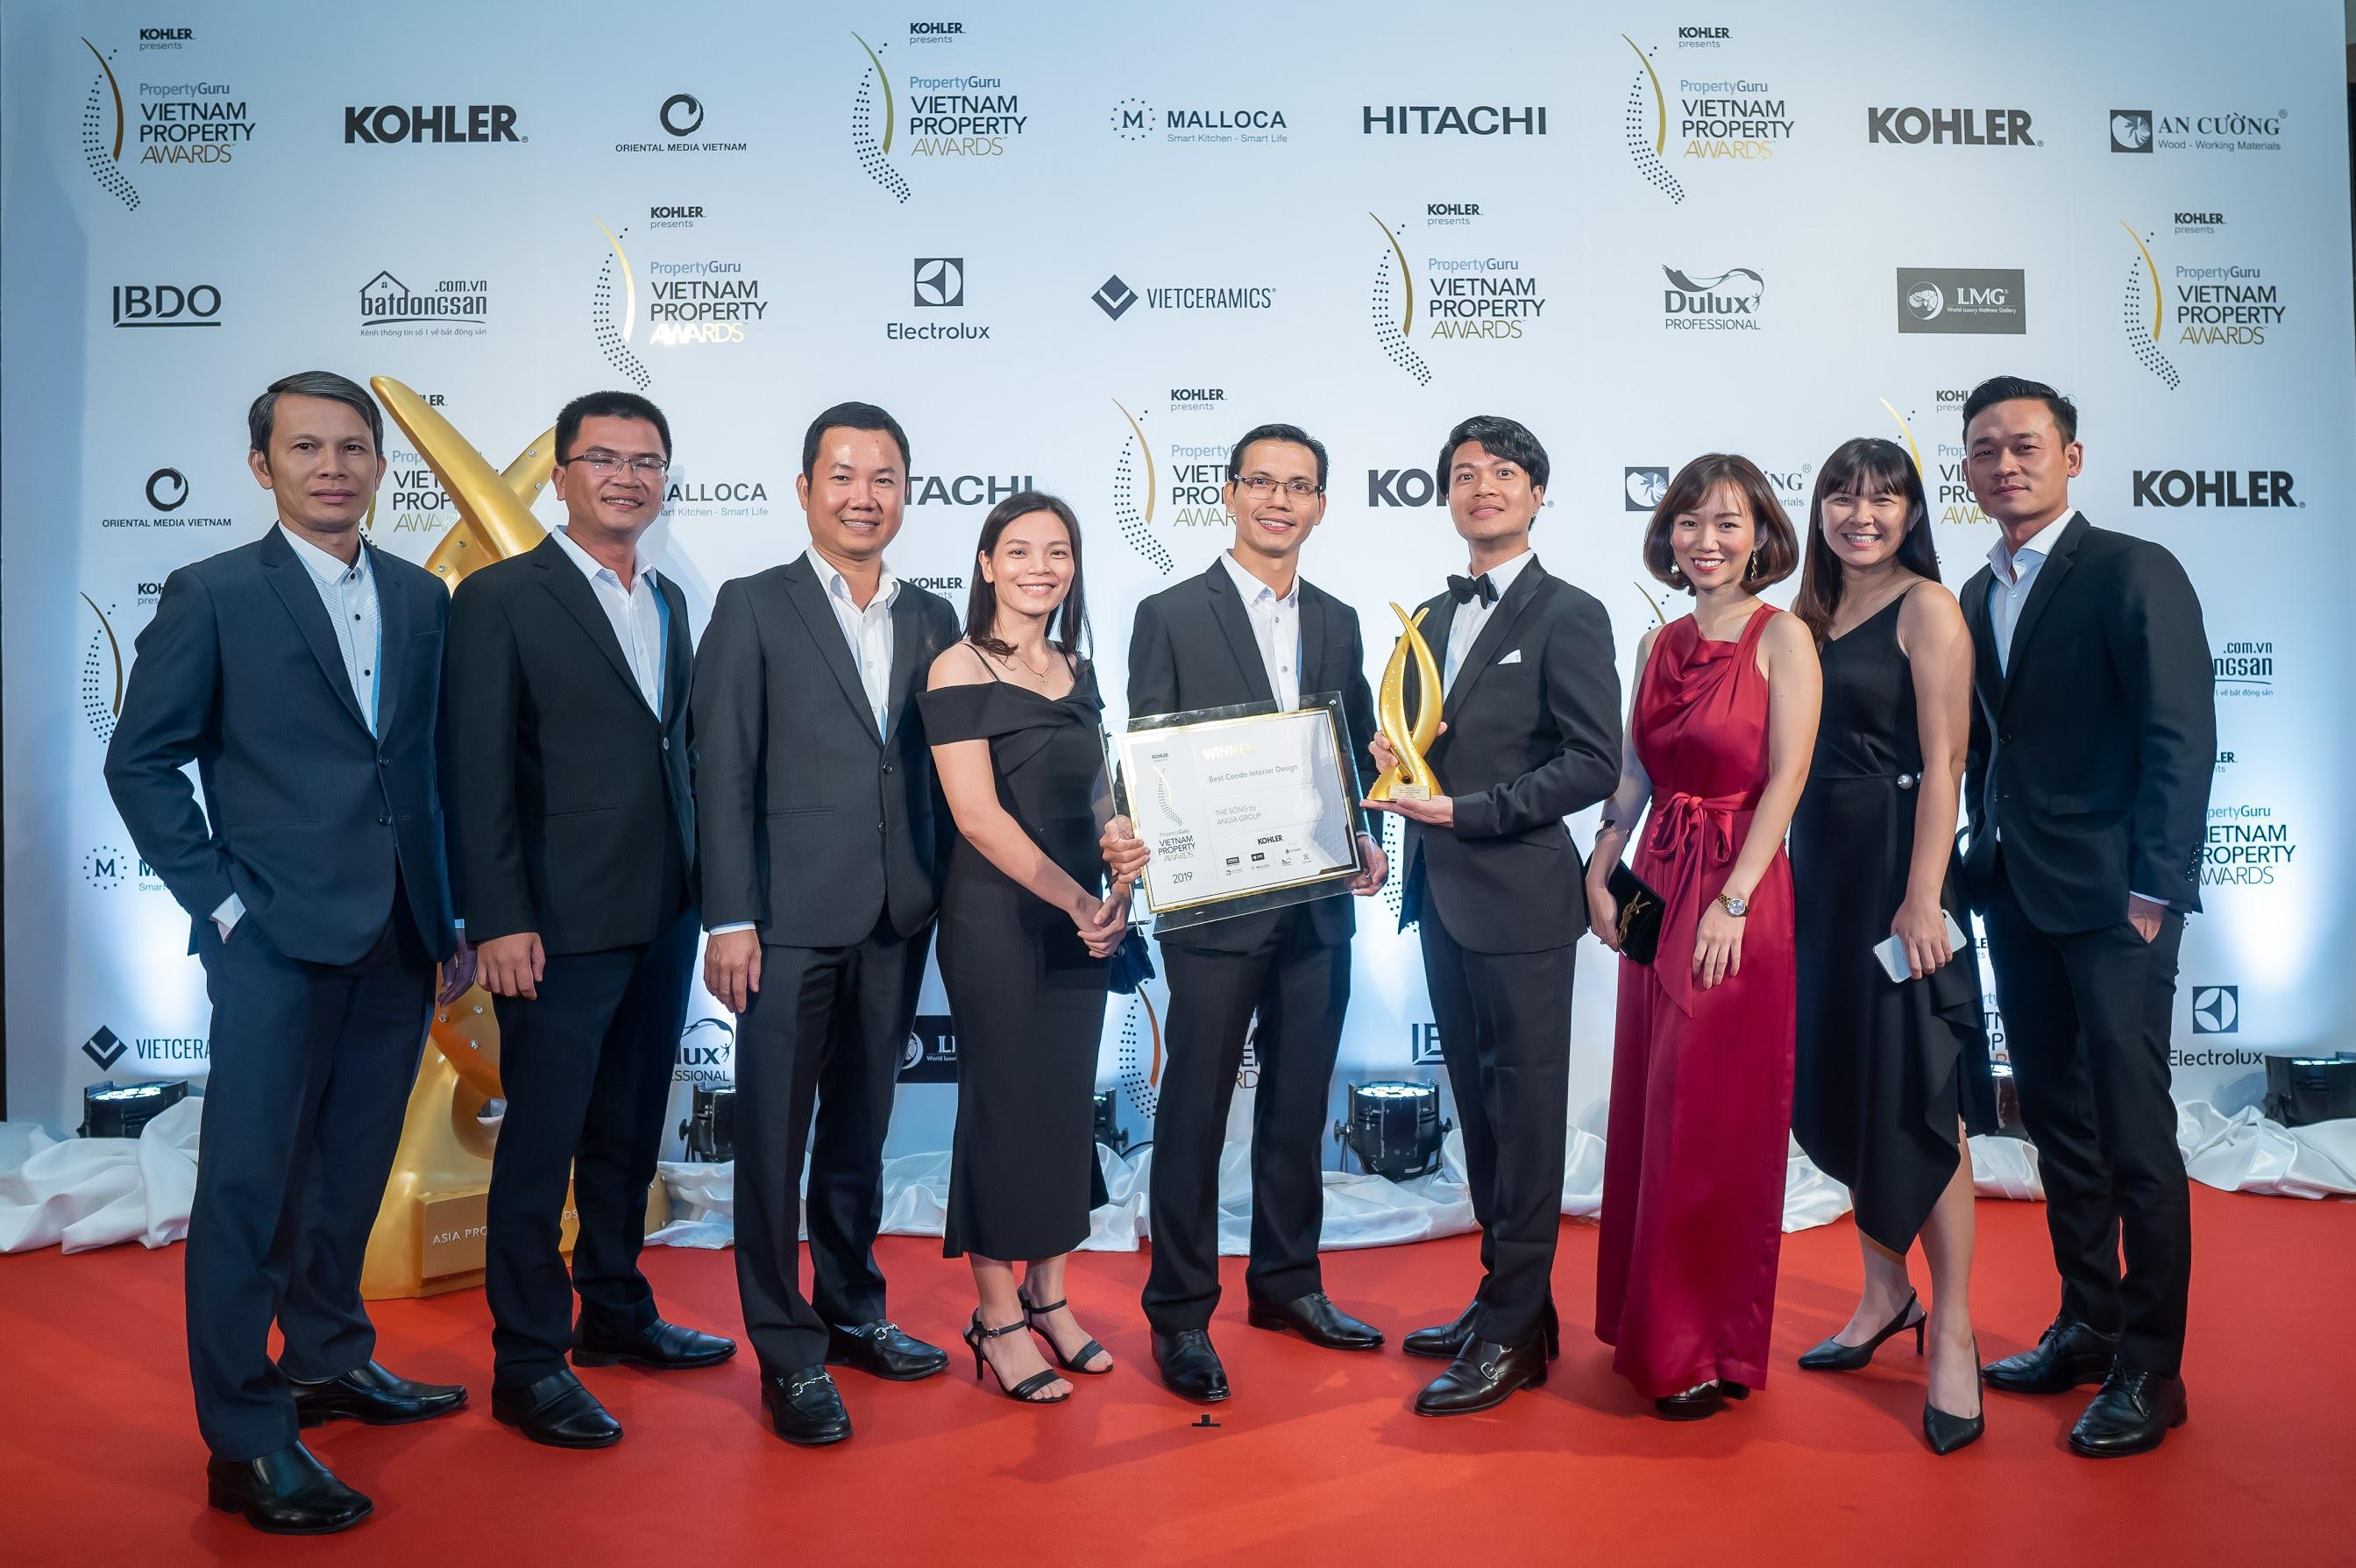 THE SONG WON BIG AT VIETNAM PROPERTY AWARDS 2019